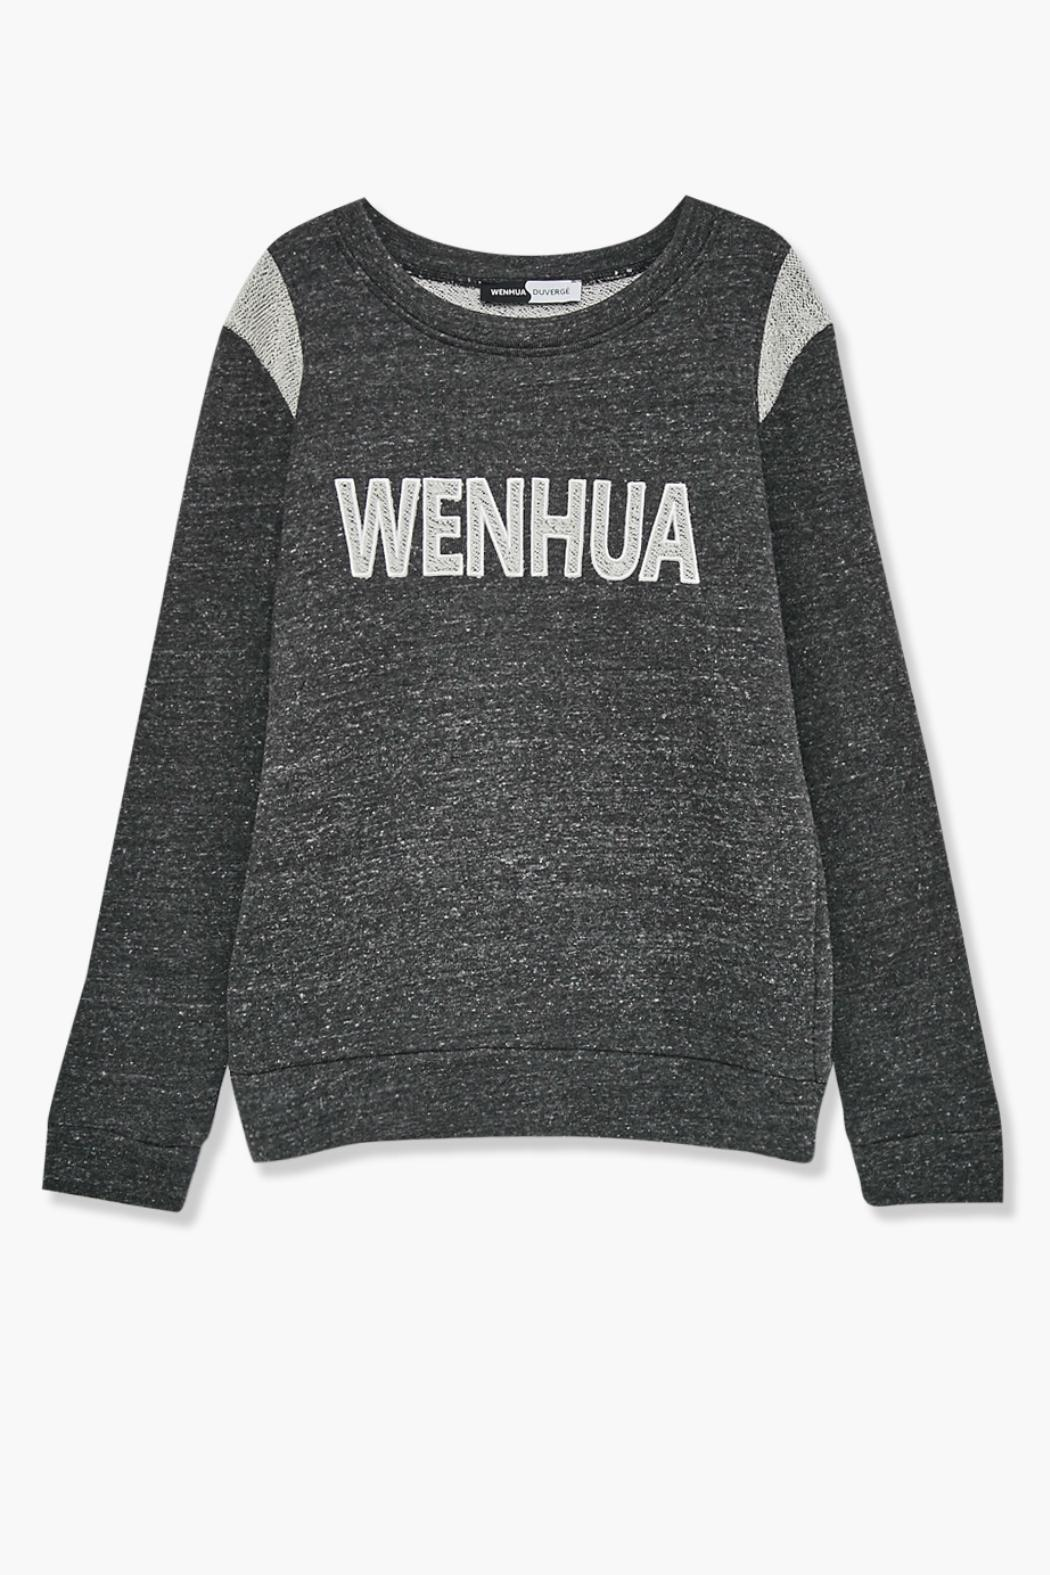 WENHUA DUVERGÉ Organic Cotton Sweatshirt - Back Cropped Image